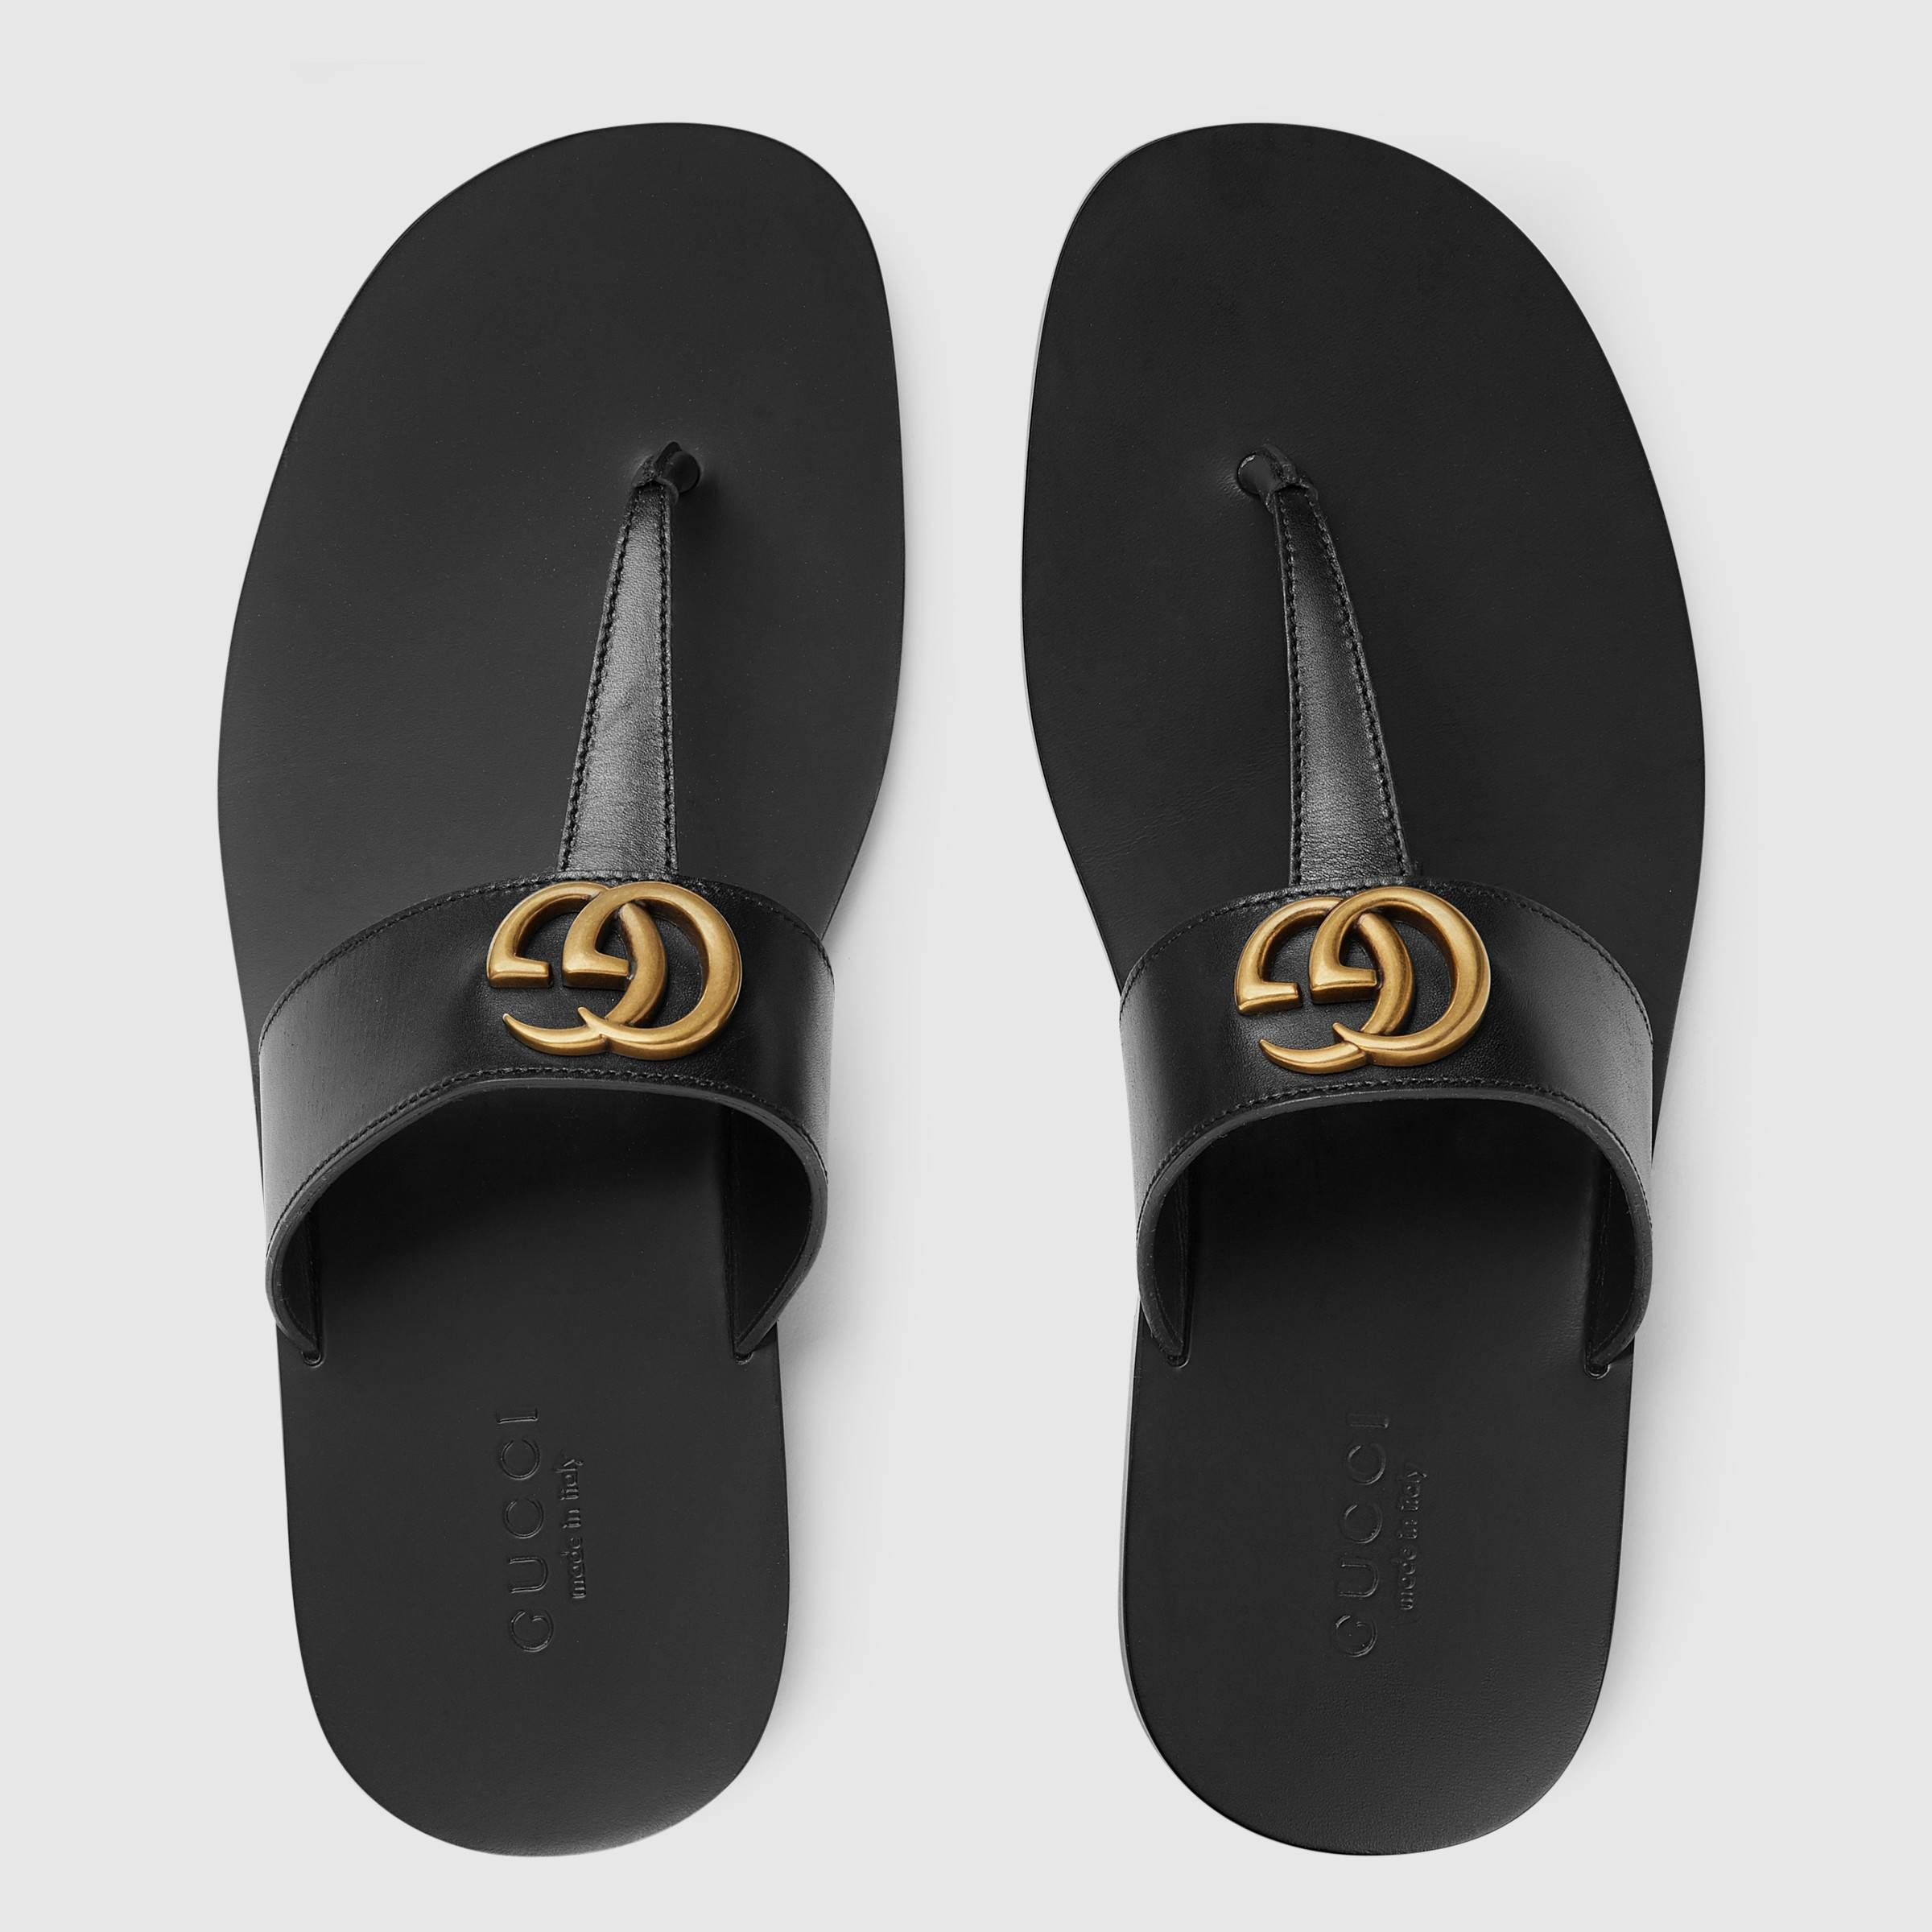 e4df4afd24 Leather thong sandal with Double G - Gucci Men's Sandals & Slides ...